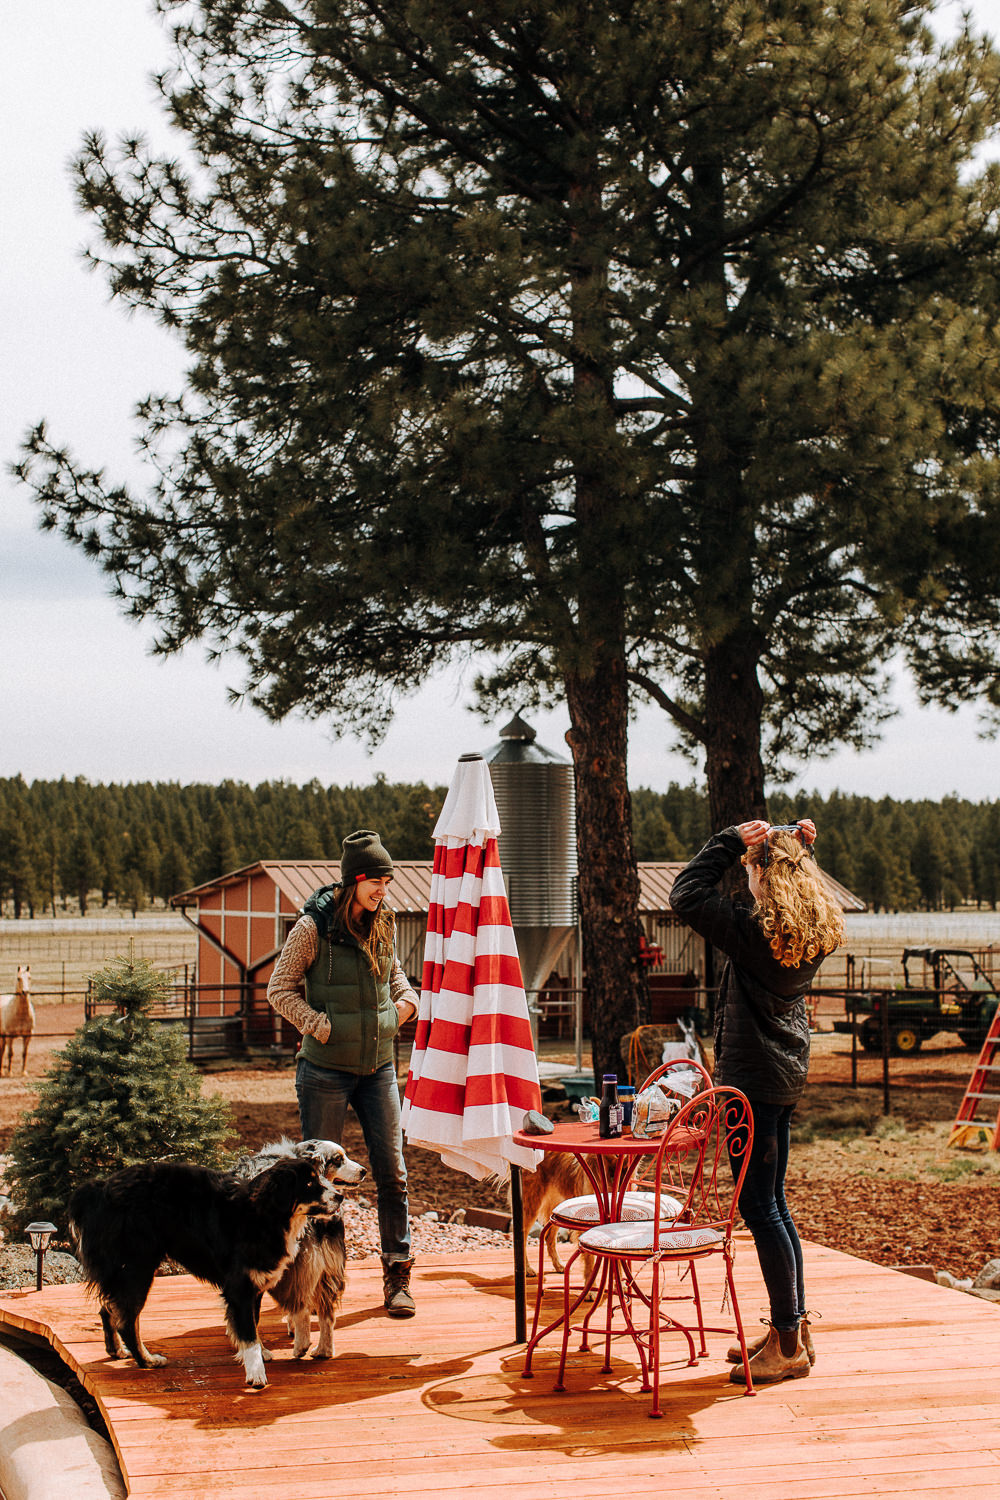 Best Cabins and Camping Around Flagstaff with Hipcamp   Temple Mountain Ranch in Williams, Arizona